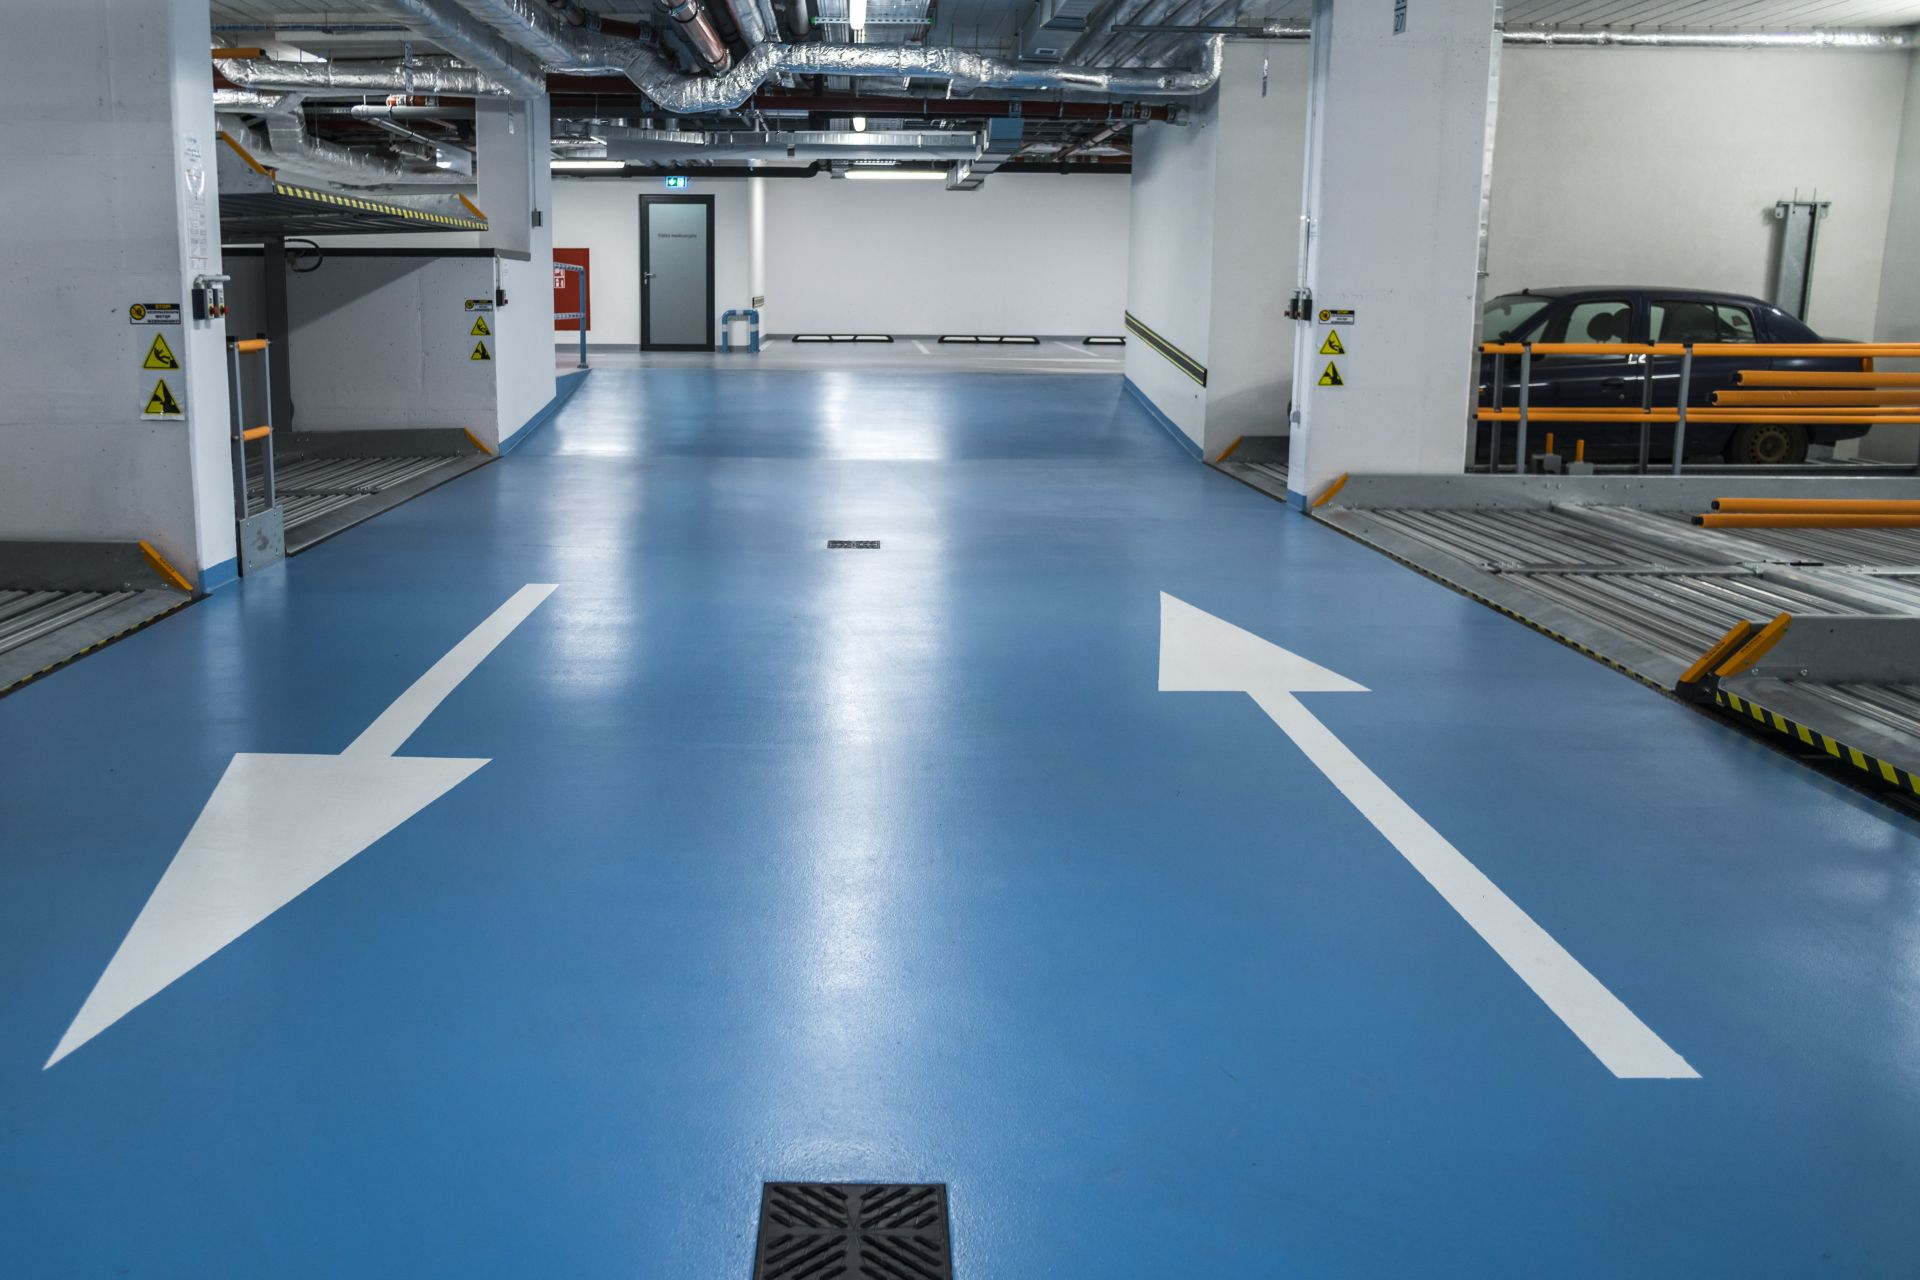 Garage Floor of the Medicus Clinic in Wroclaw, Poland